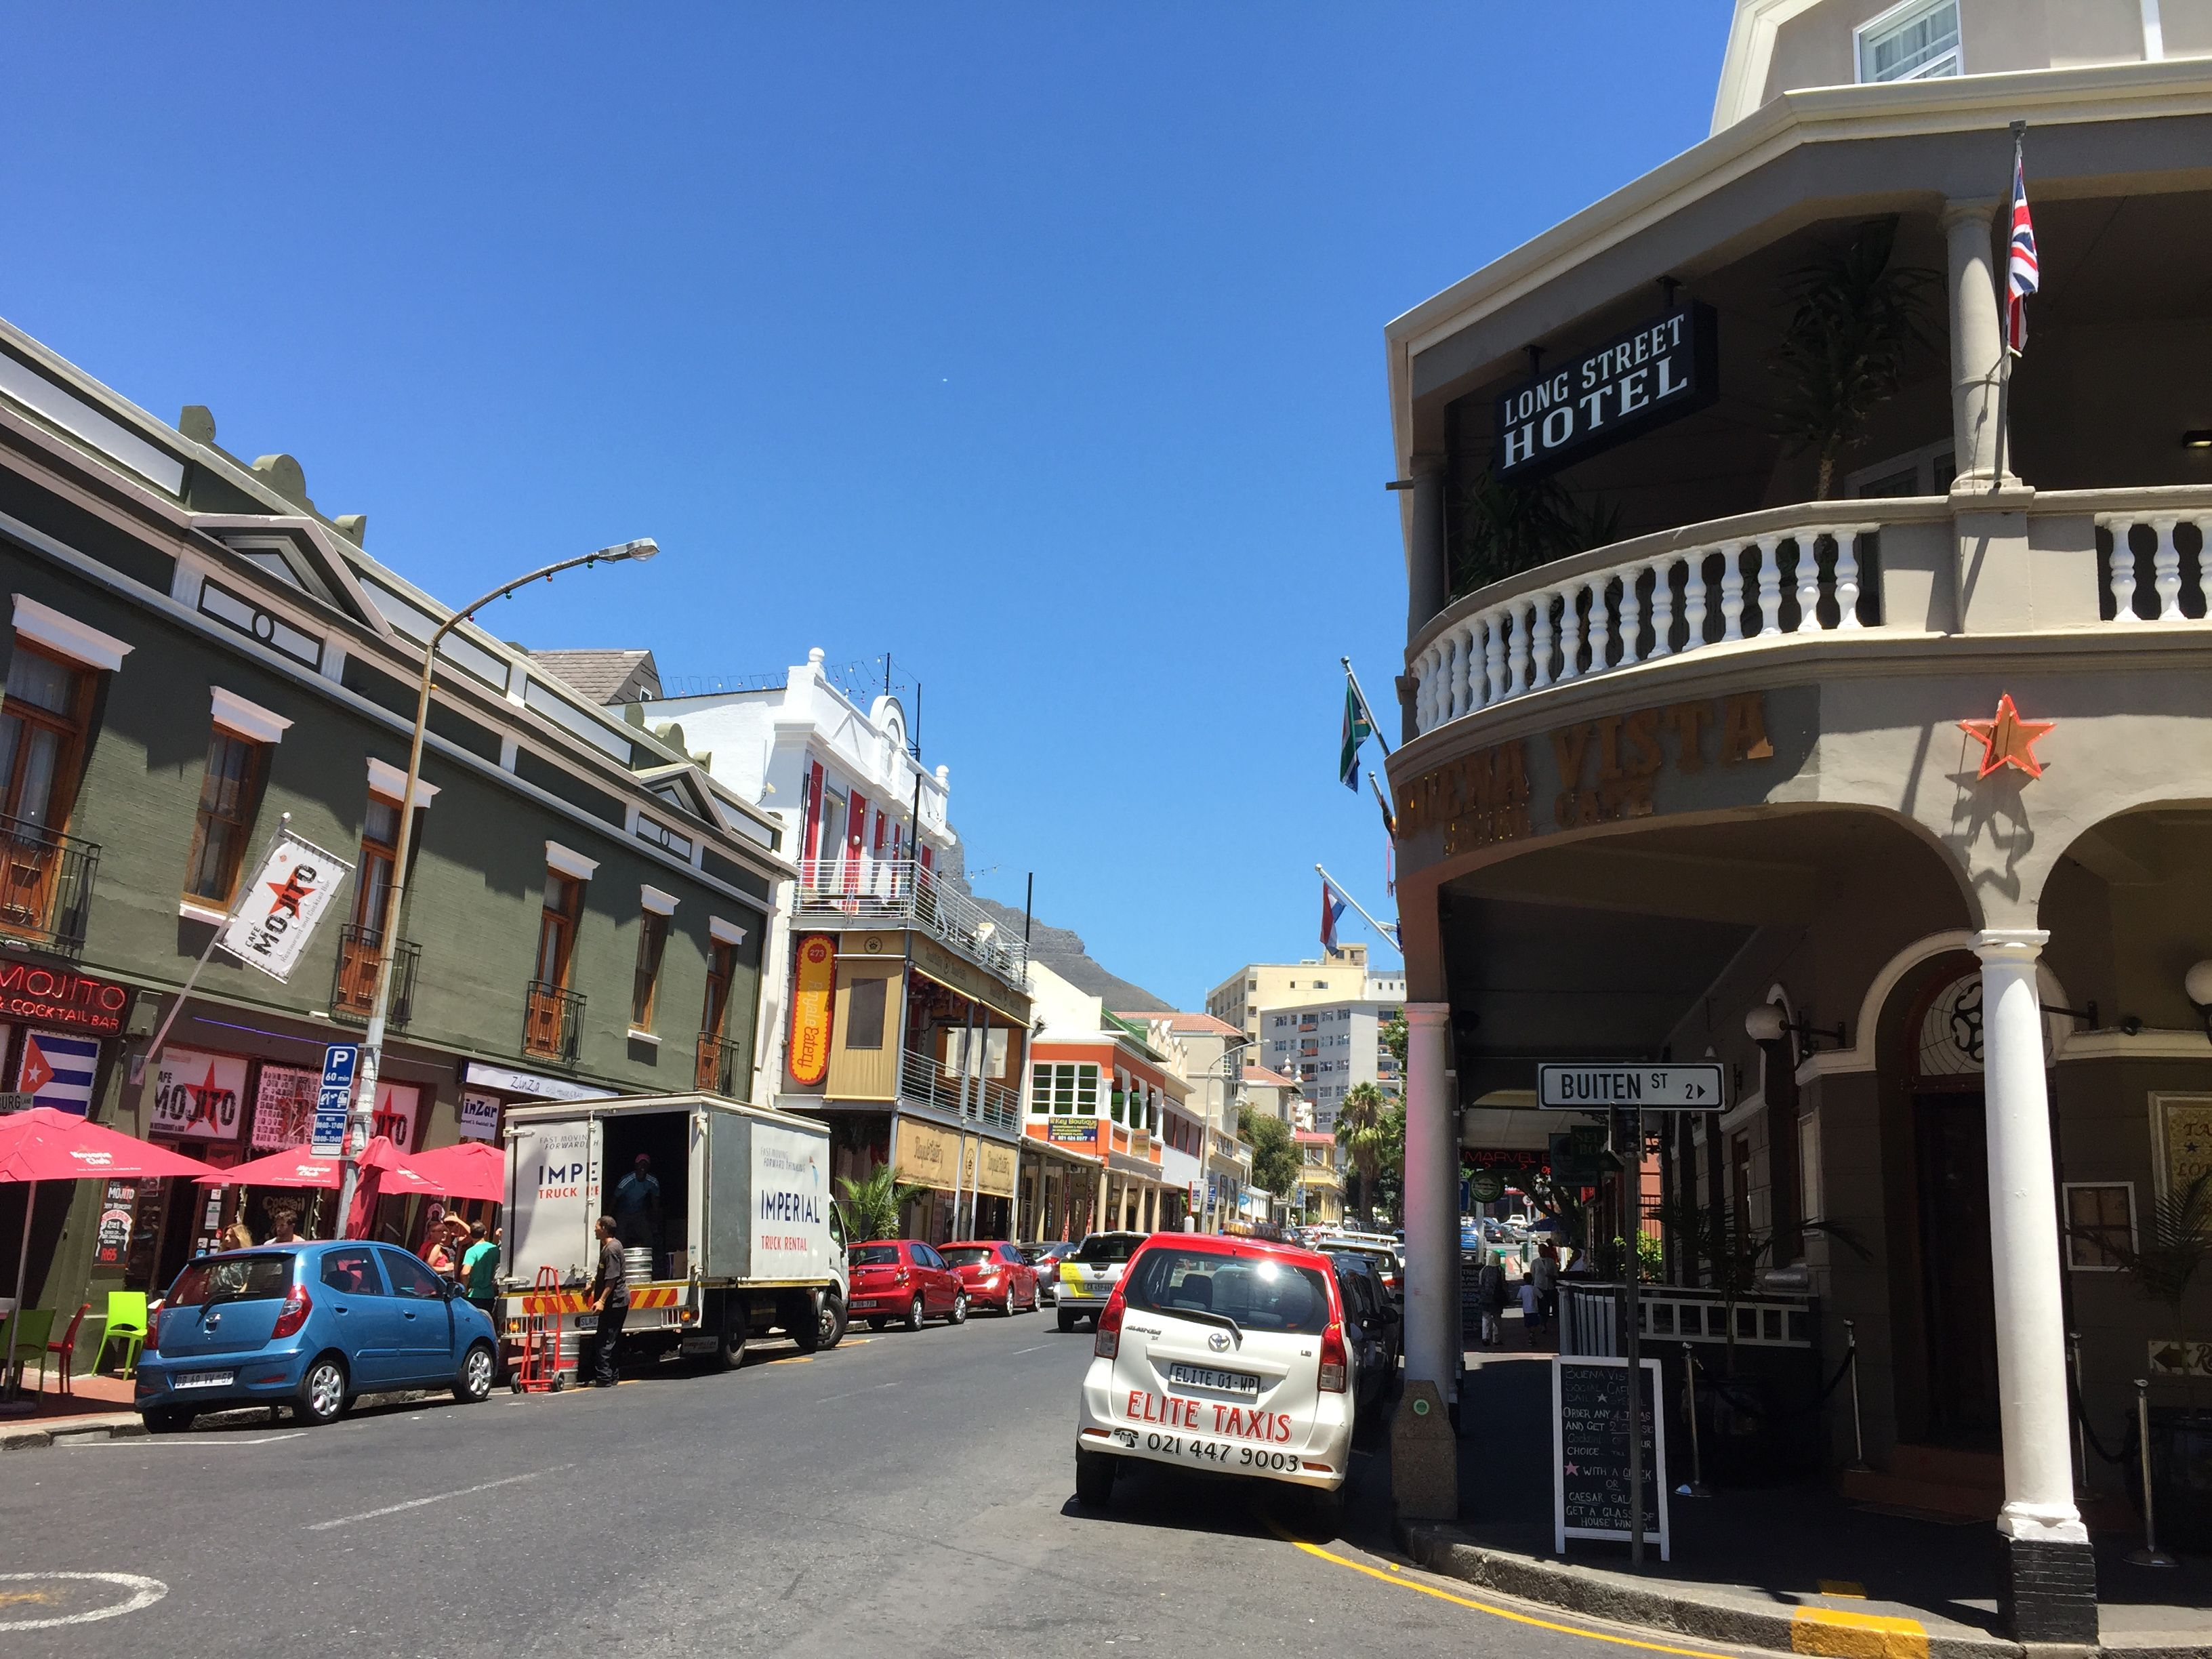 Old buildings in Long St, Cape Town